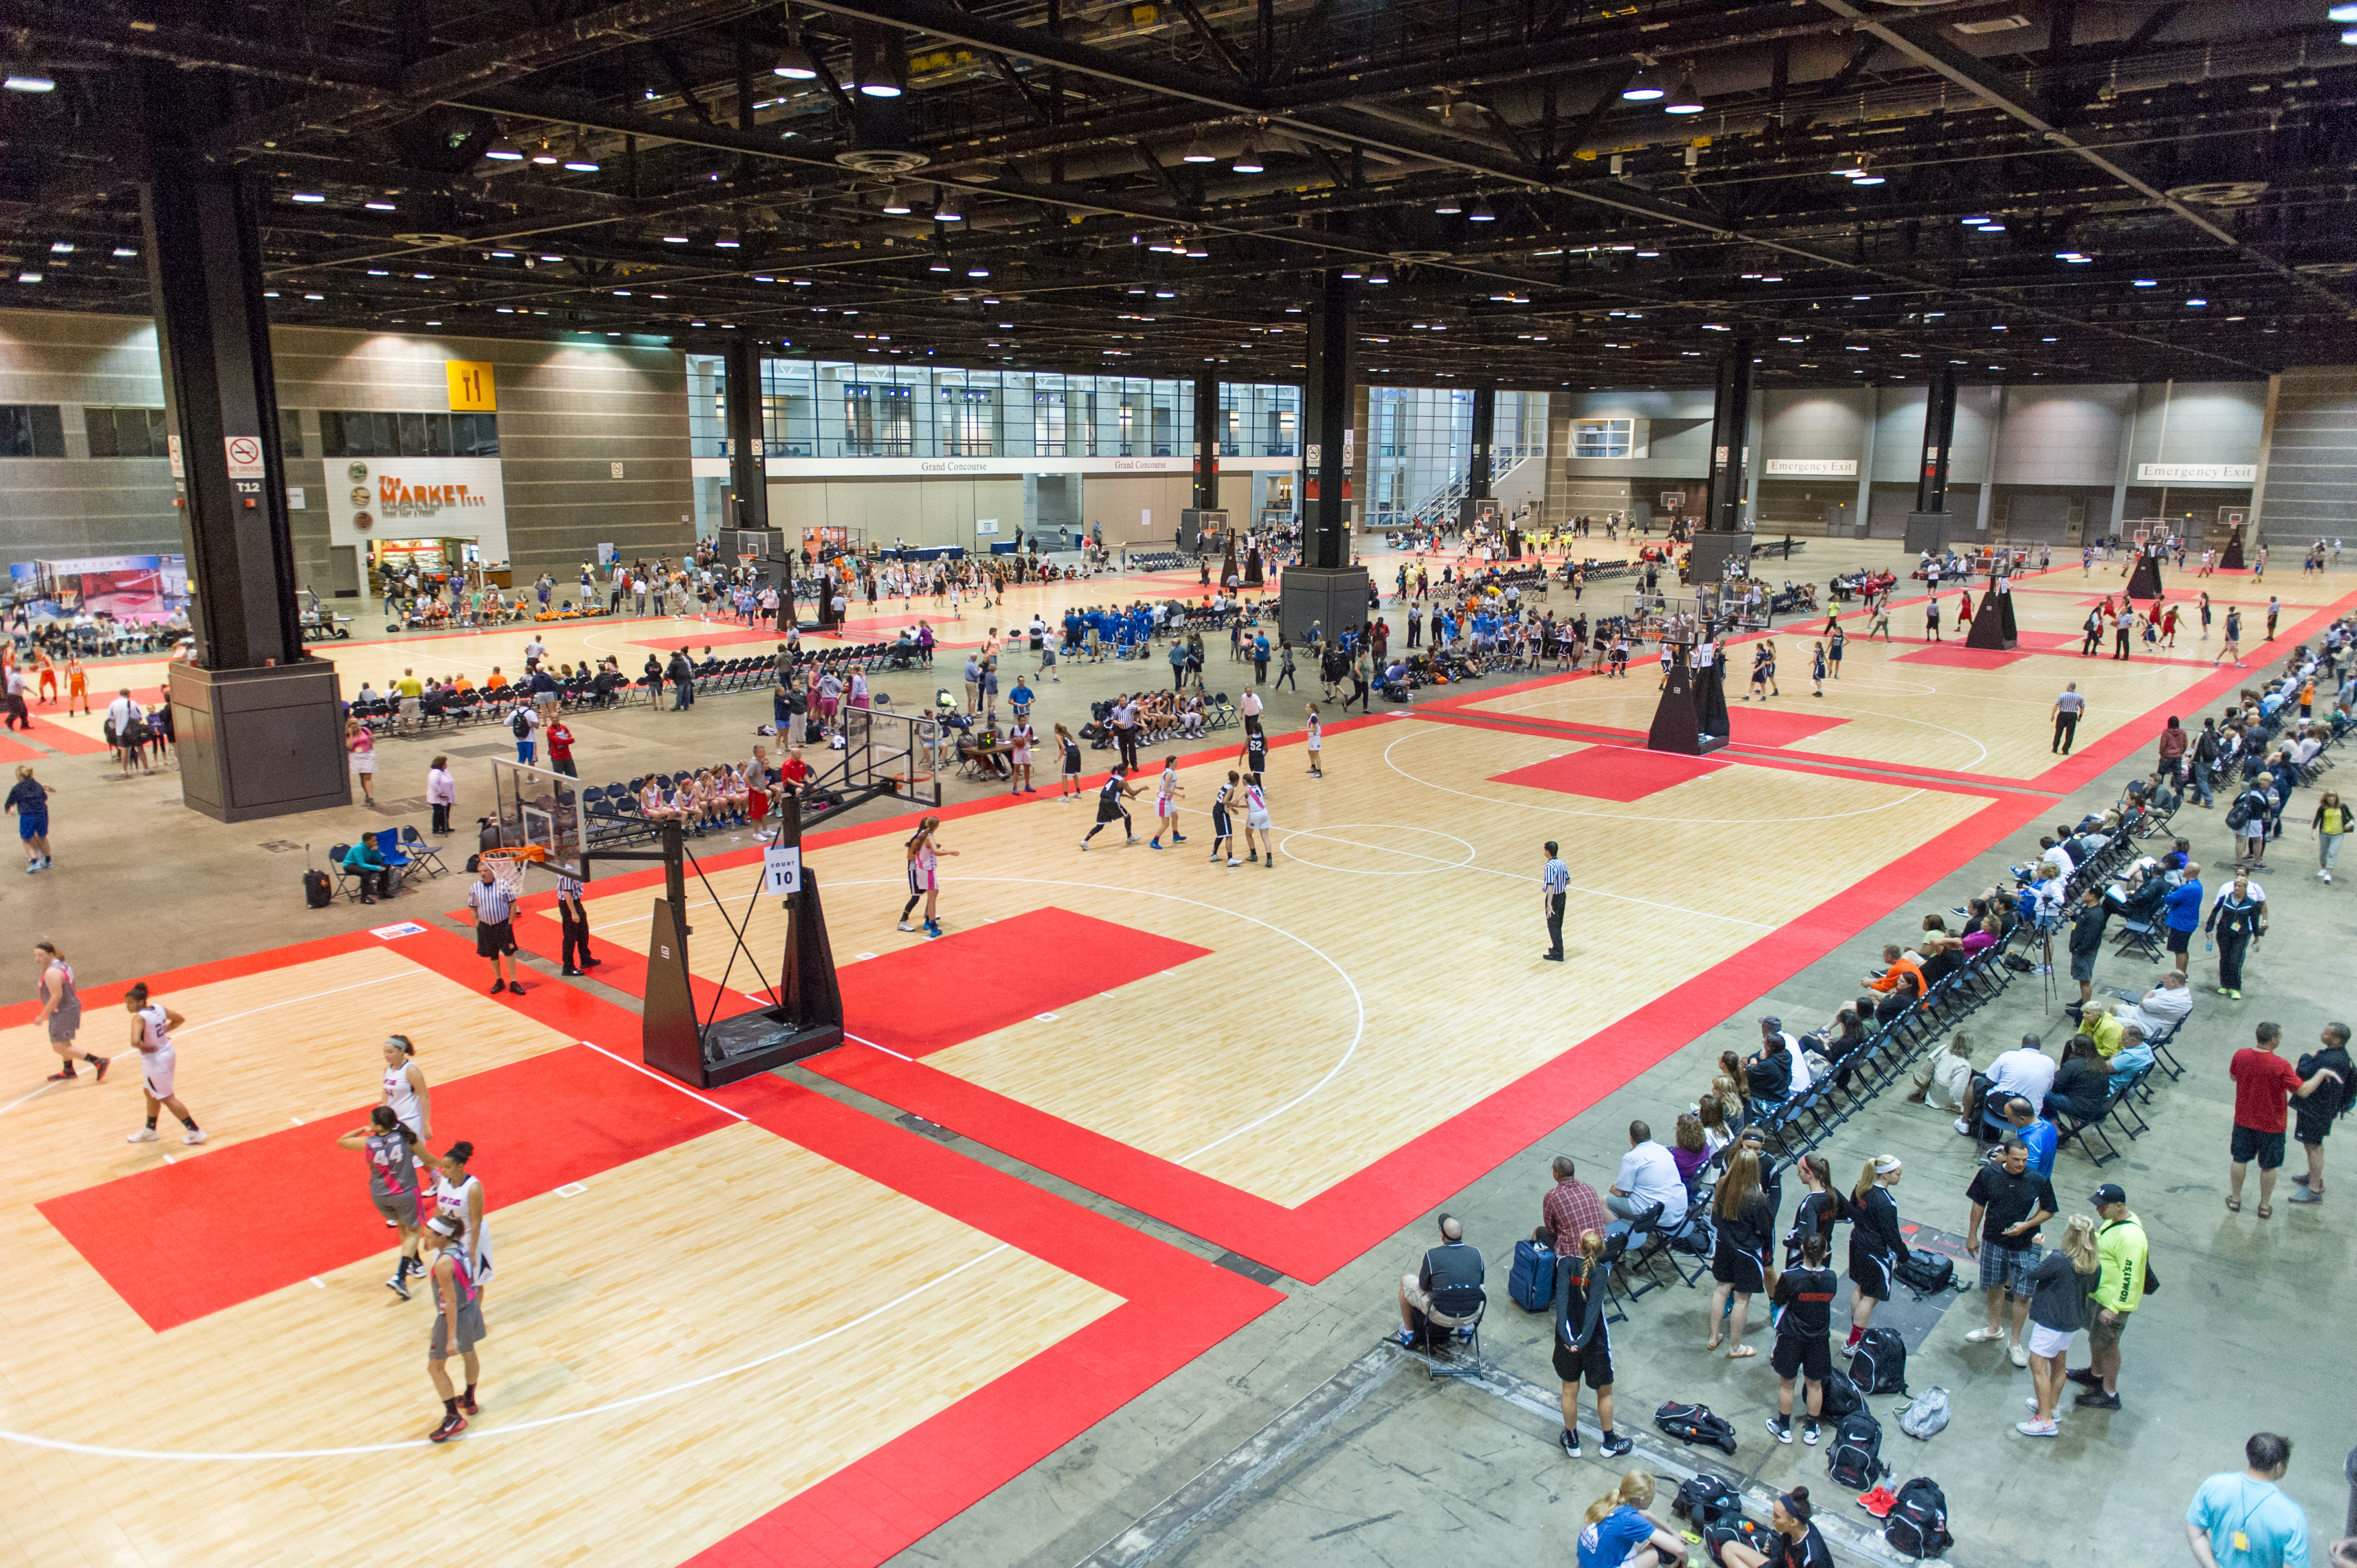 Sport Court To Provide 38 Maple Select Courts For The 17th Annual Nike Tournament Of Champions